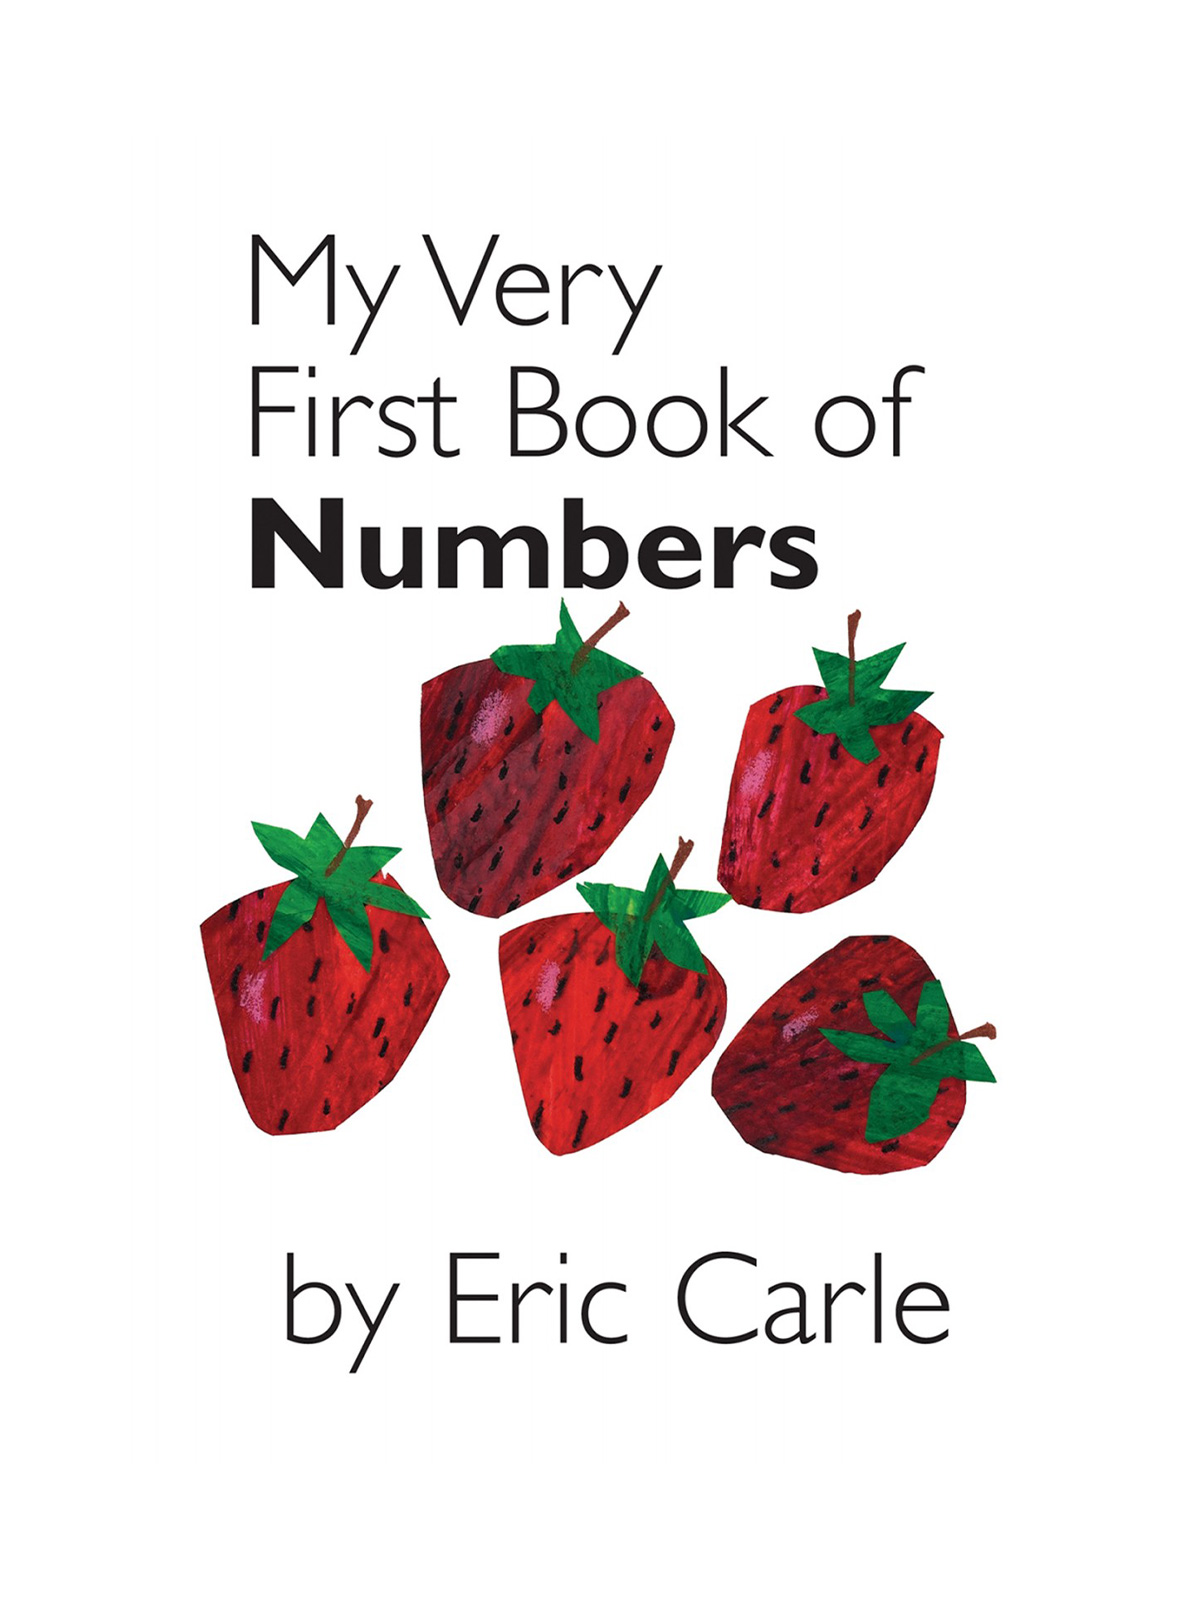 chm-eric-carle-my-very-first-book-of-numbers